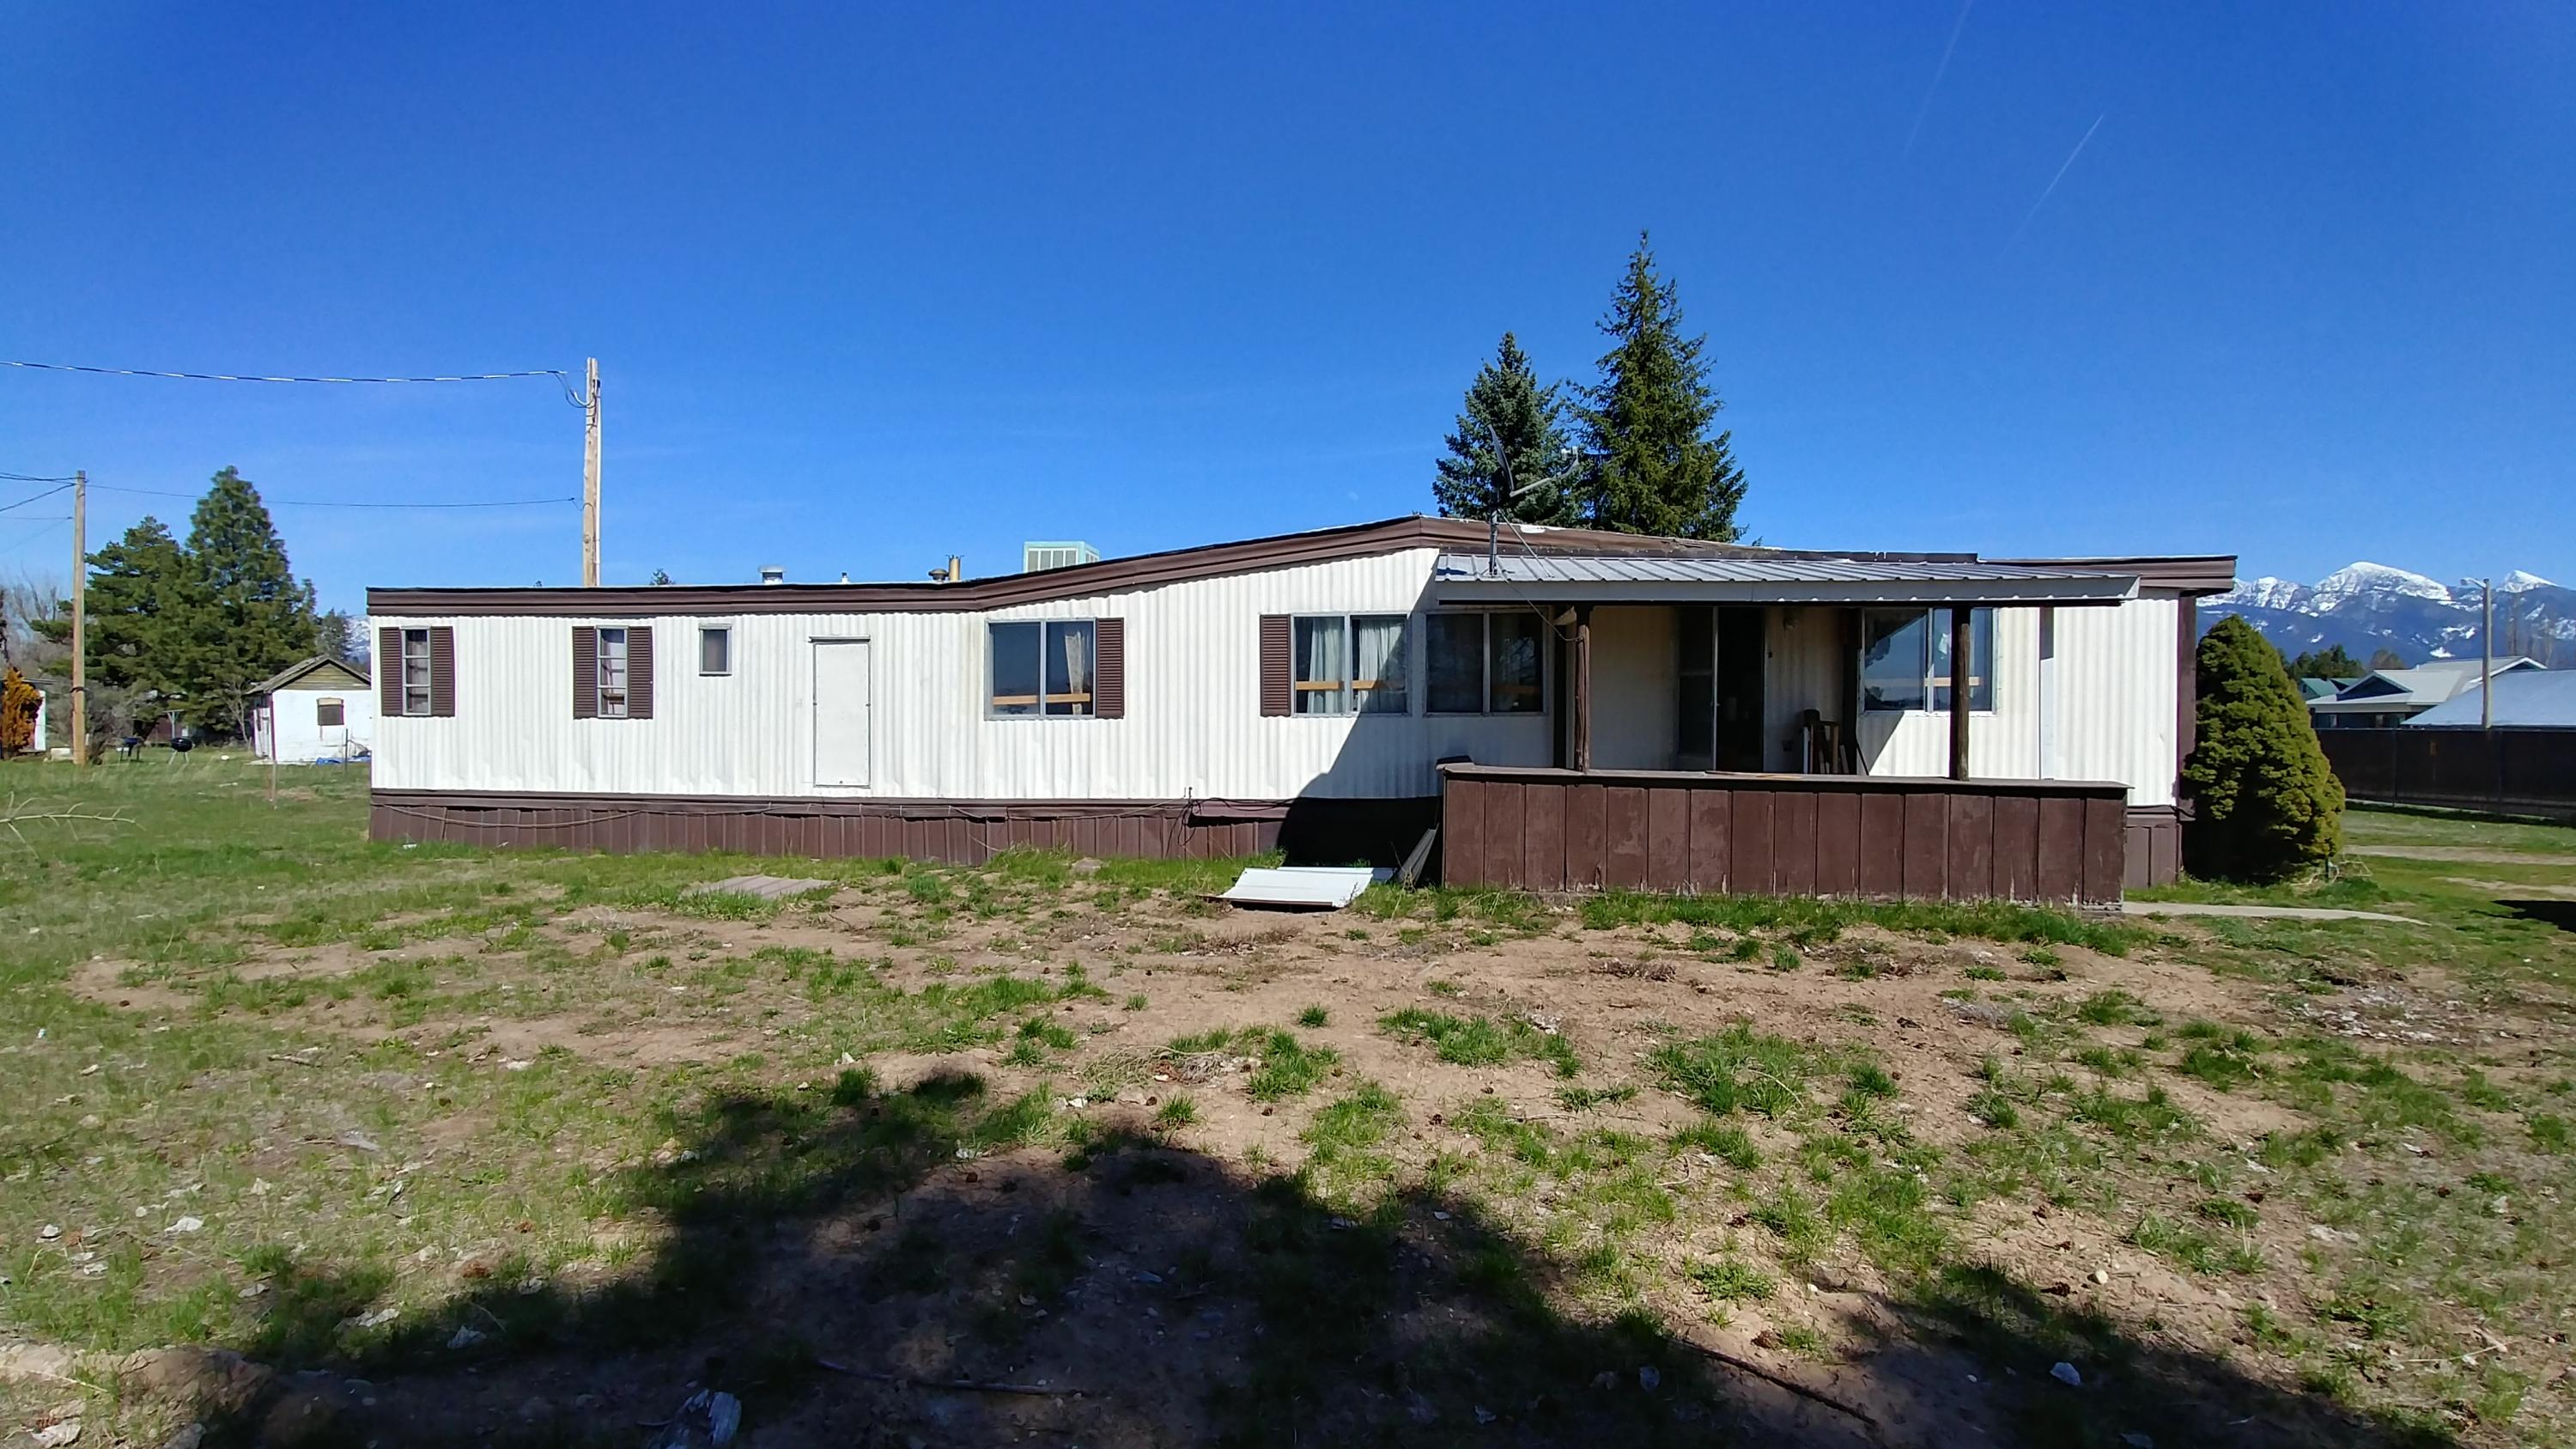 36248 Felsman Street, Ronan, MT 59864 (MLS# 21800798 ... on value of 1973 mobile home, 1973 taylor mobile home, 1973 single wide mobile home, 1973 liberty mobile home,